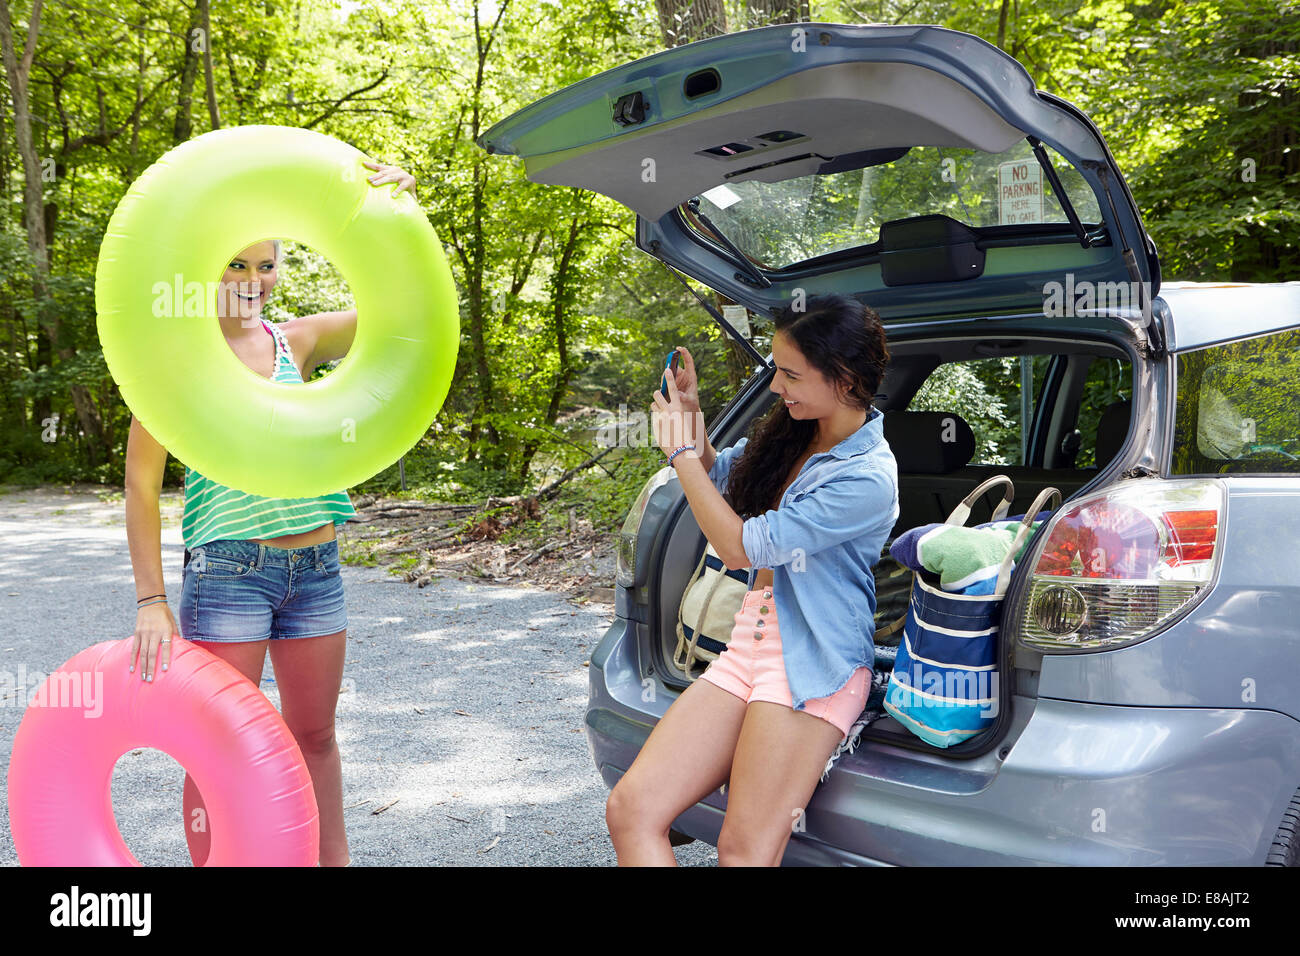 Hikers sitting at rear of car photographing - Stock Image